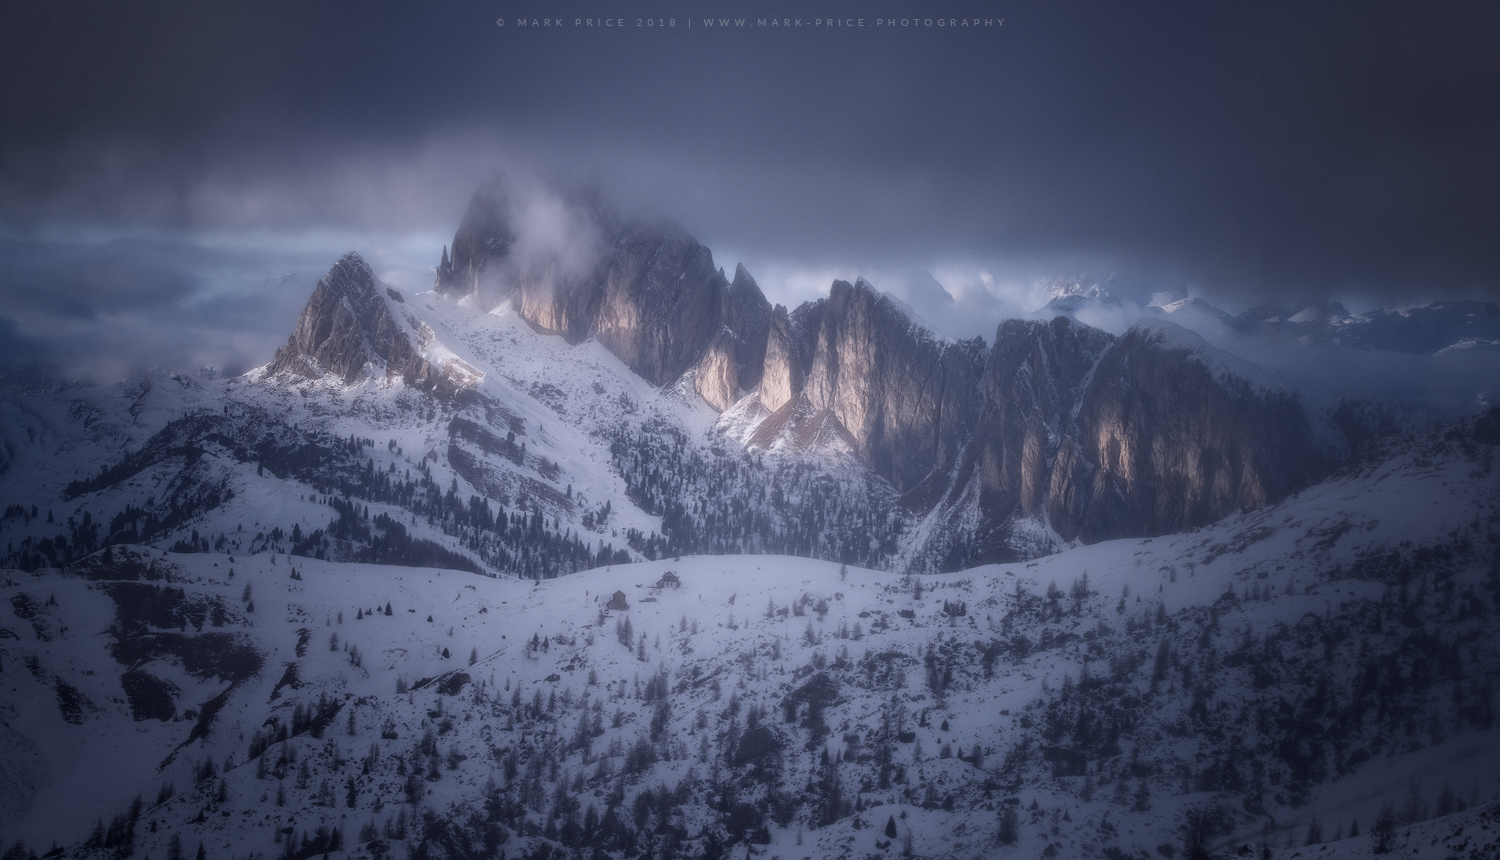 The Setsass range during stormy winter light in the Dolomites